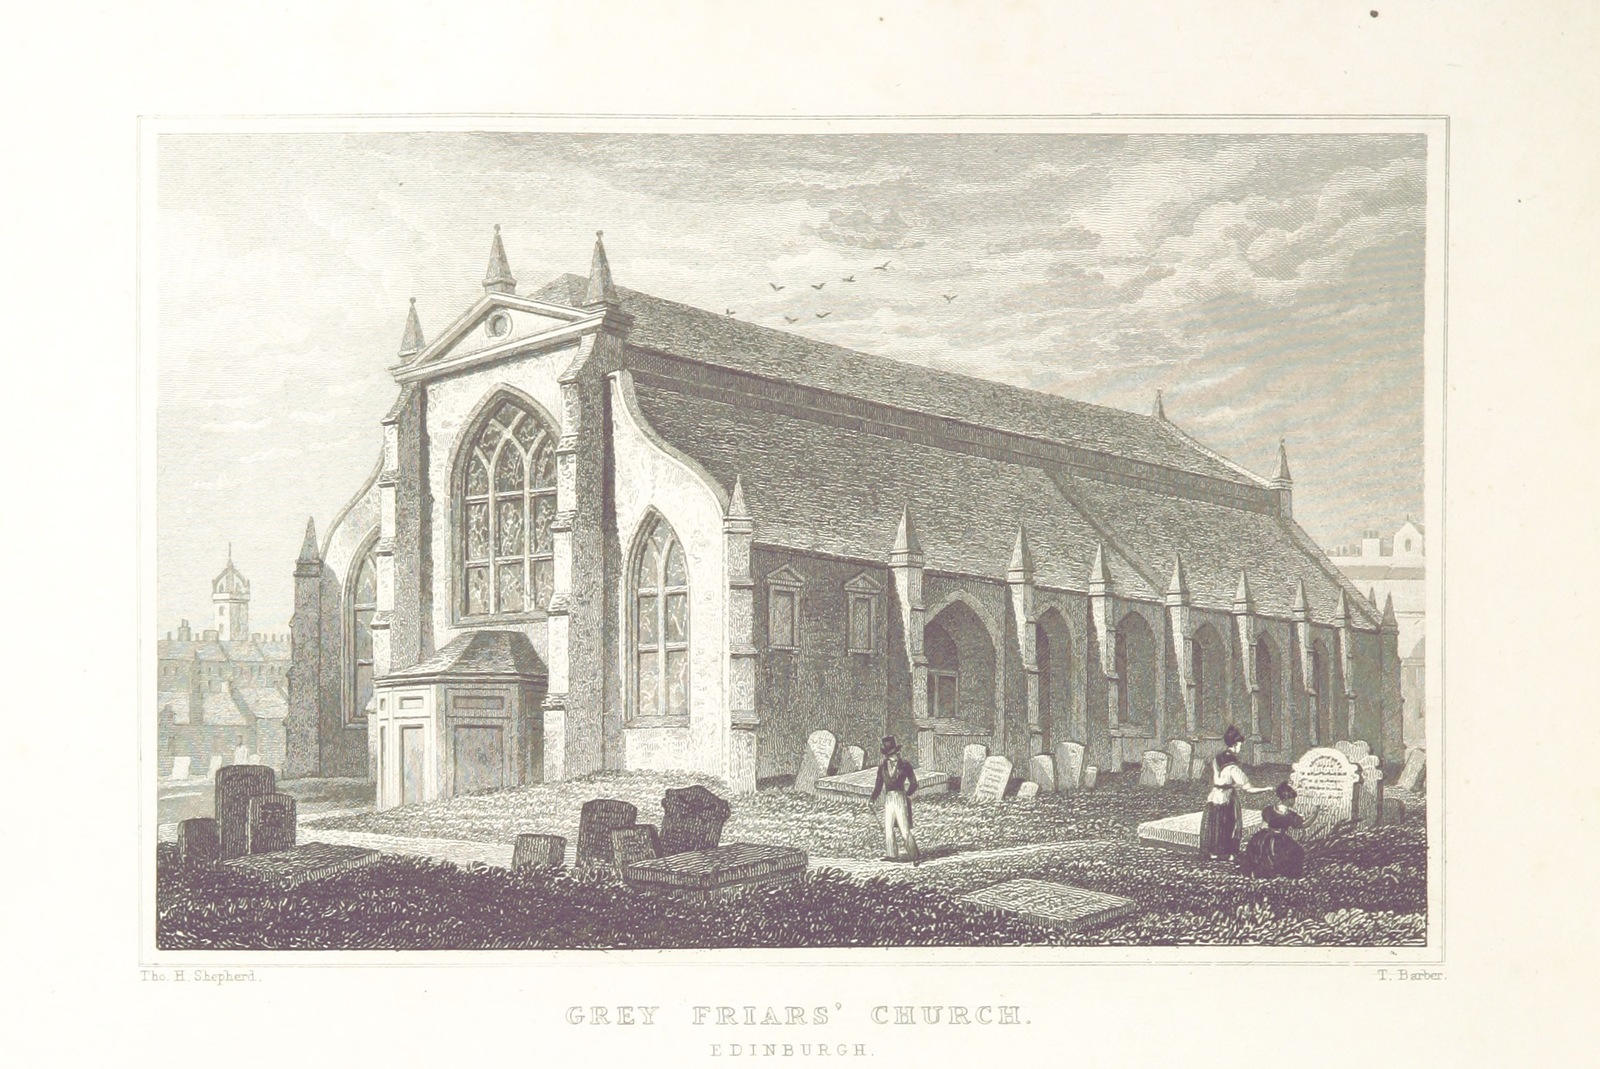 """Greyfriars Kirk from """"Modern Athens, displayed in a series of views; or, Edinburgh in the nineteenth century; exhibiting the whole of the new buildings, modern improvements, antiquities, & picturesque scenery of the Scottish metropolis & its environs, from original drawings by Mr. T. H. Shepherd. With historical, topographical & critical illustrations [by John Britton]"""""""